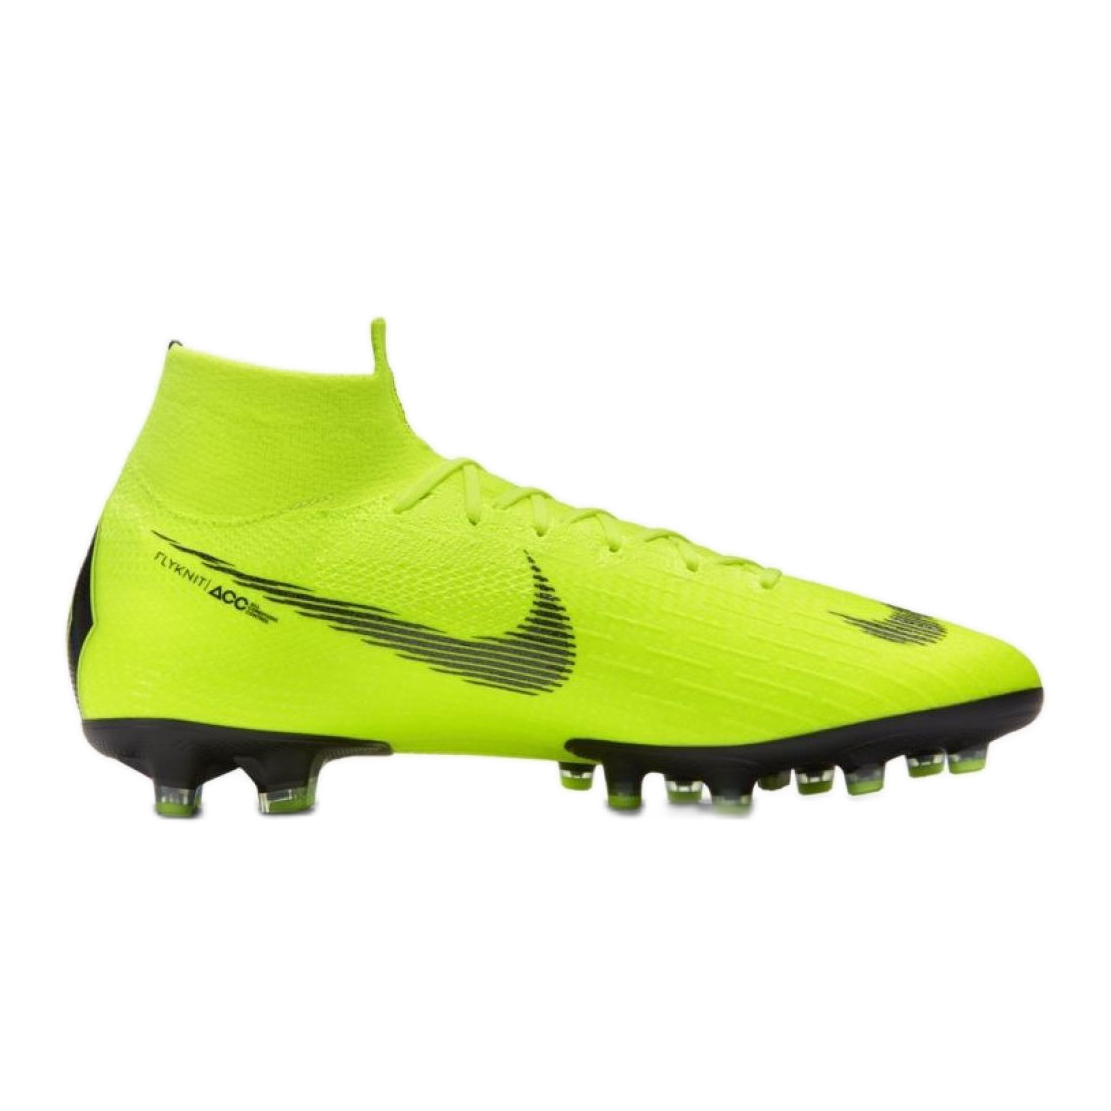 De Football Elite Nike 6 Pro Superfly Ag Ah7377 Mercurial M Chaussure 701 WDeH2EI9Y